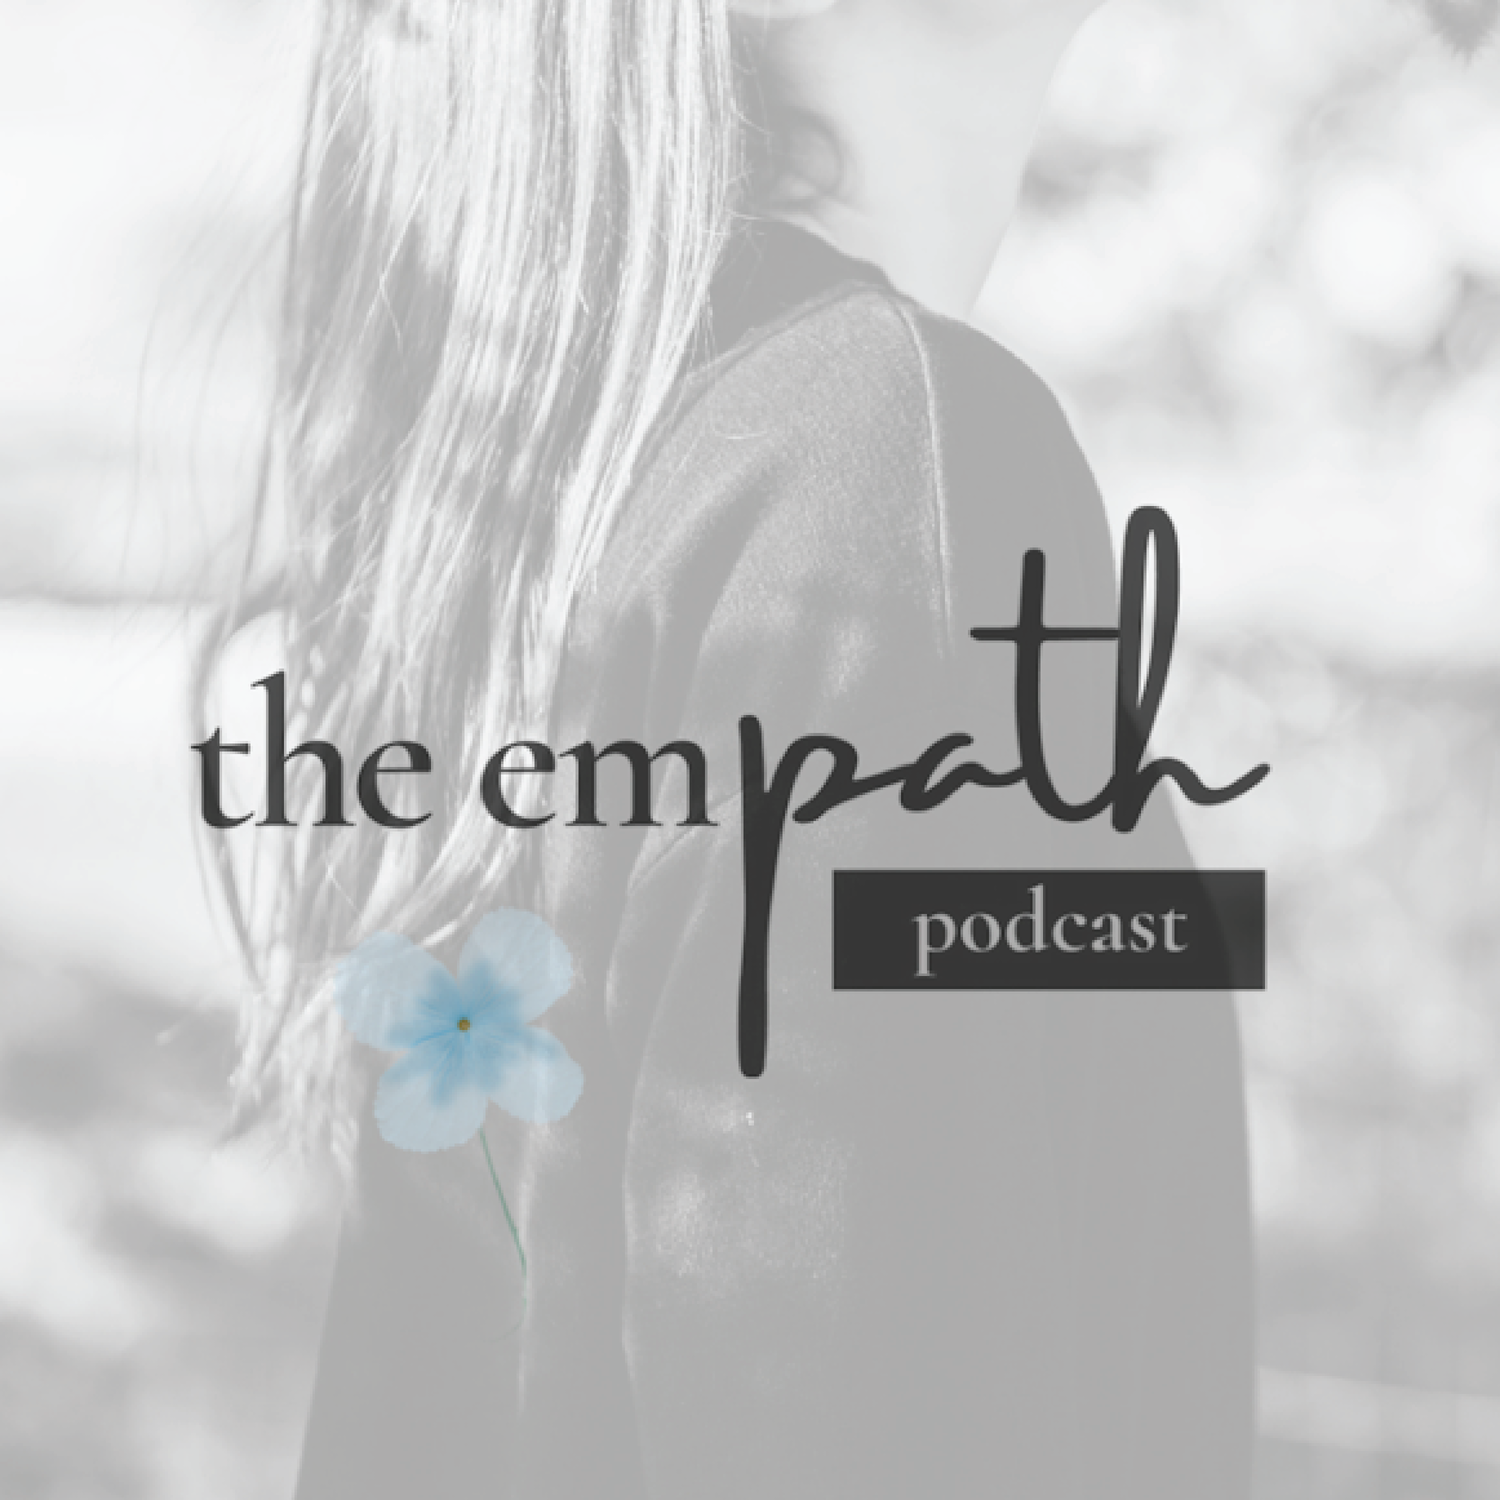 The Empath Podcast